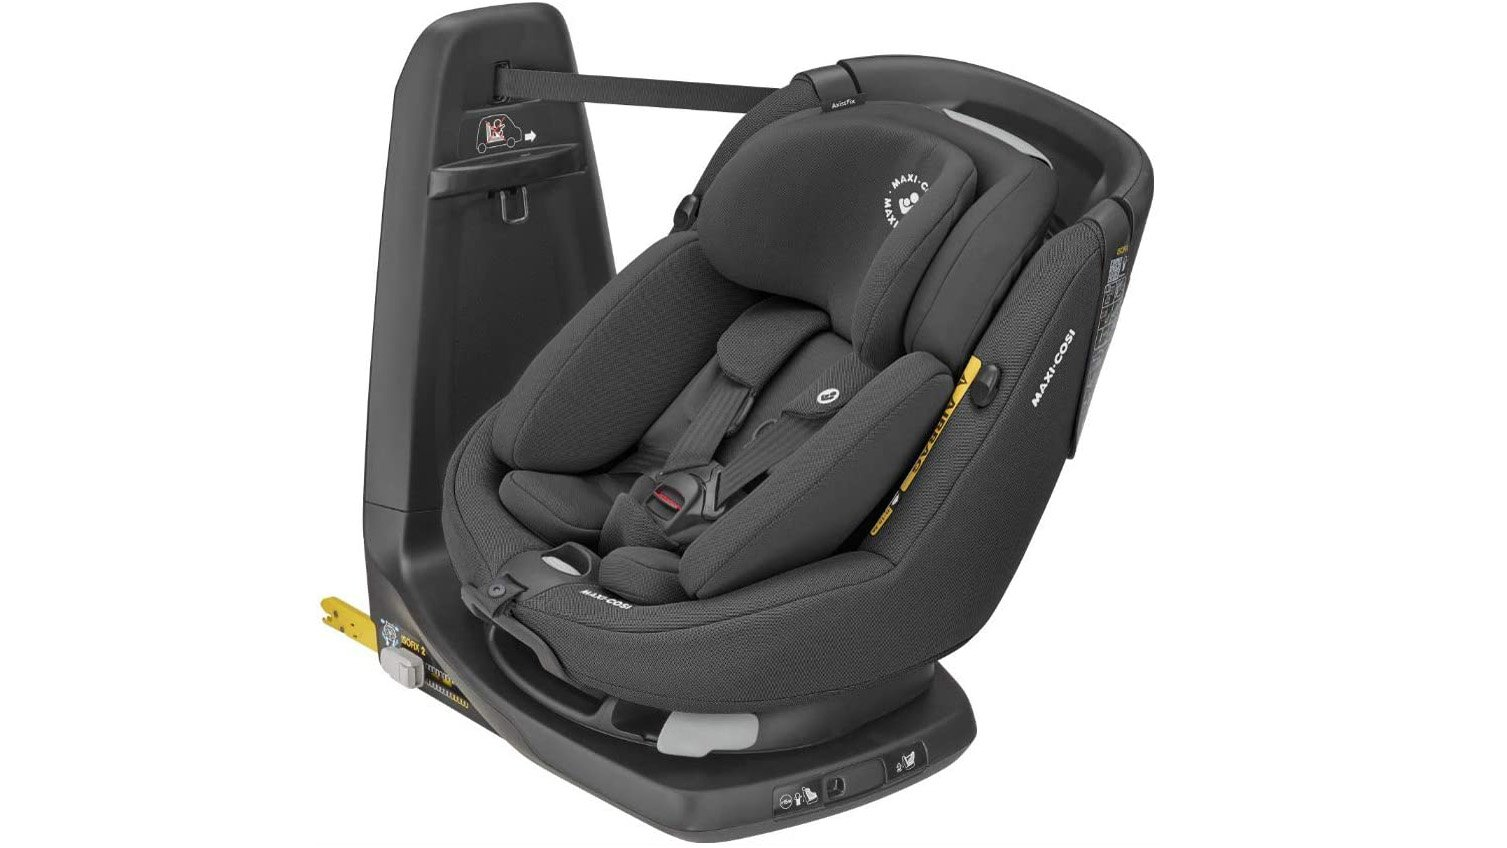 Best Amazon Black Friday baby deals: From cheap car seats ...